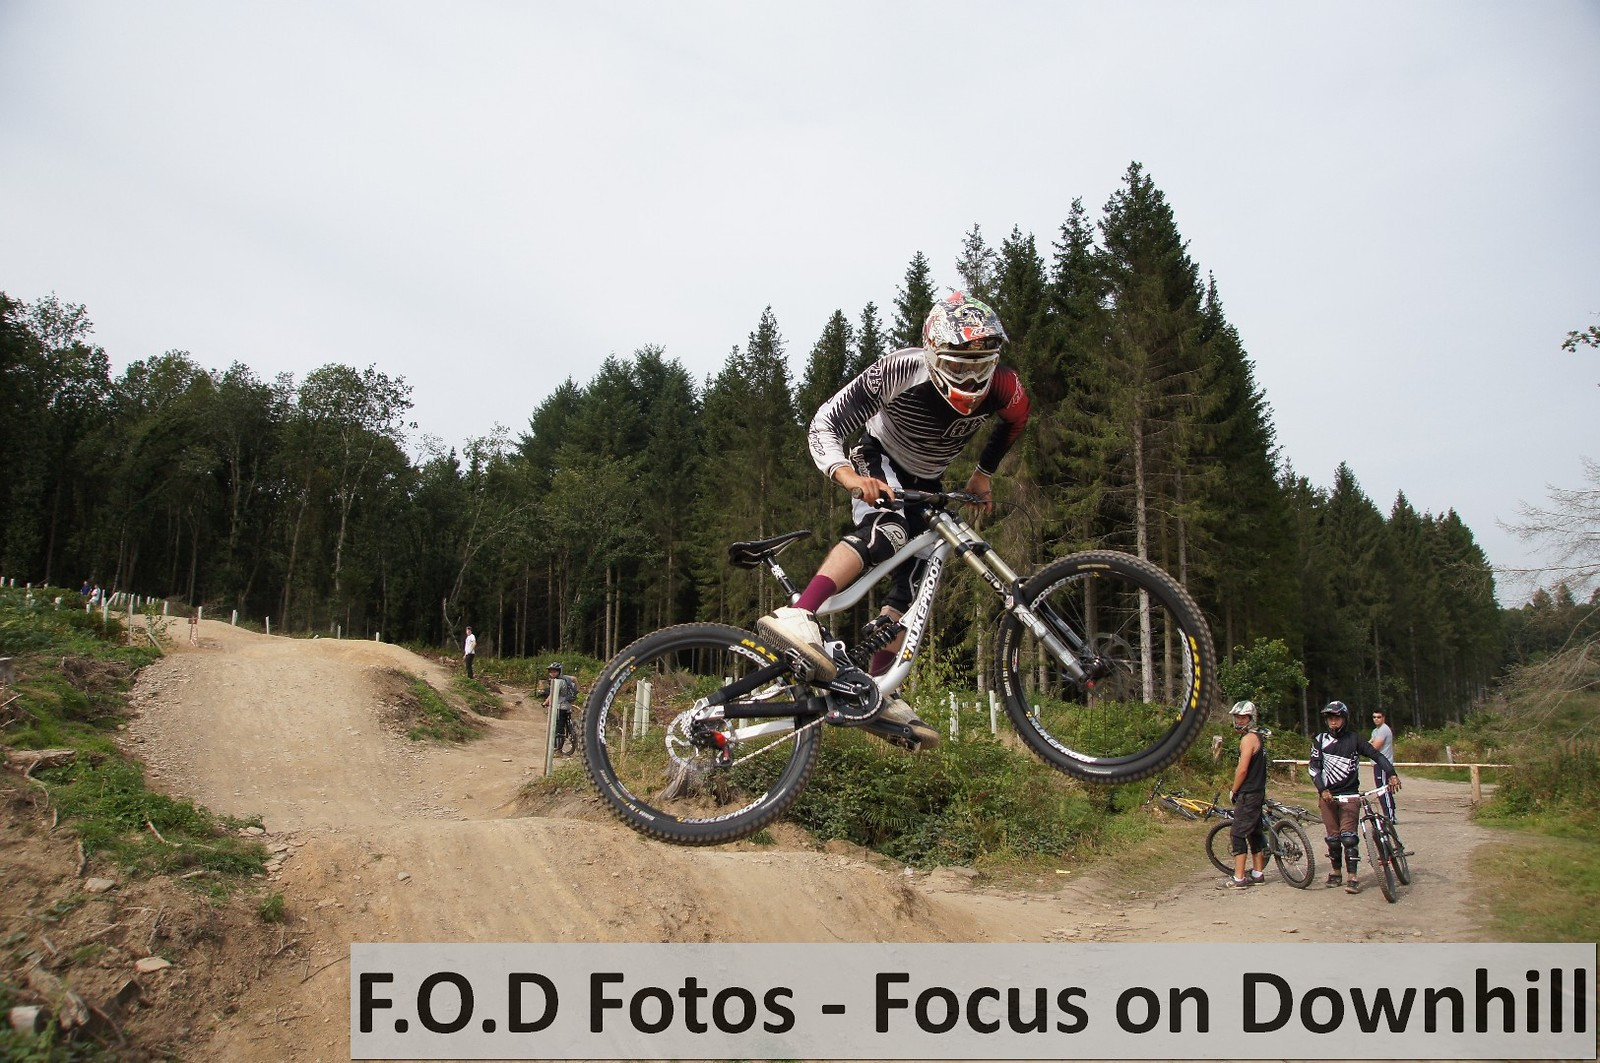 Dan DC Coulson Whip - Fodfotos - Mountain Biking Pictures - Vital MTB